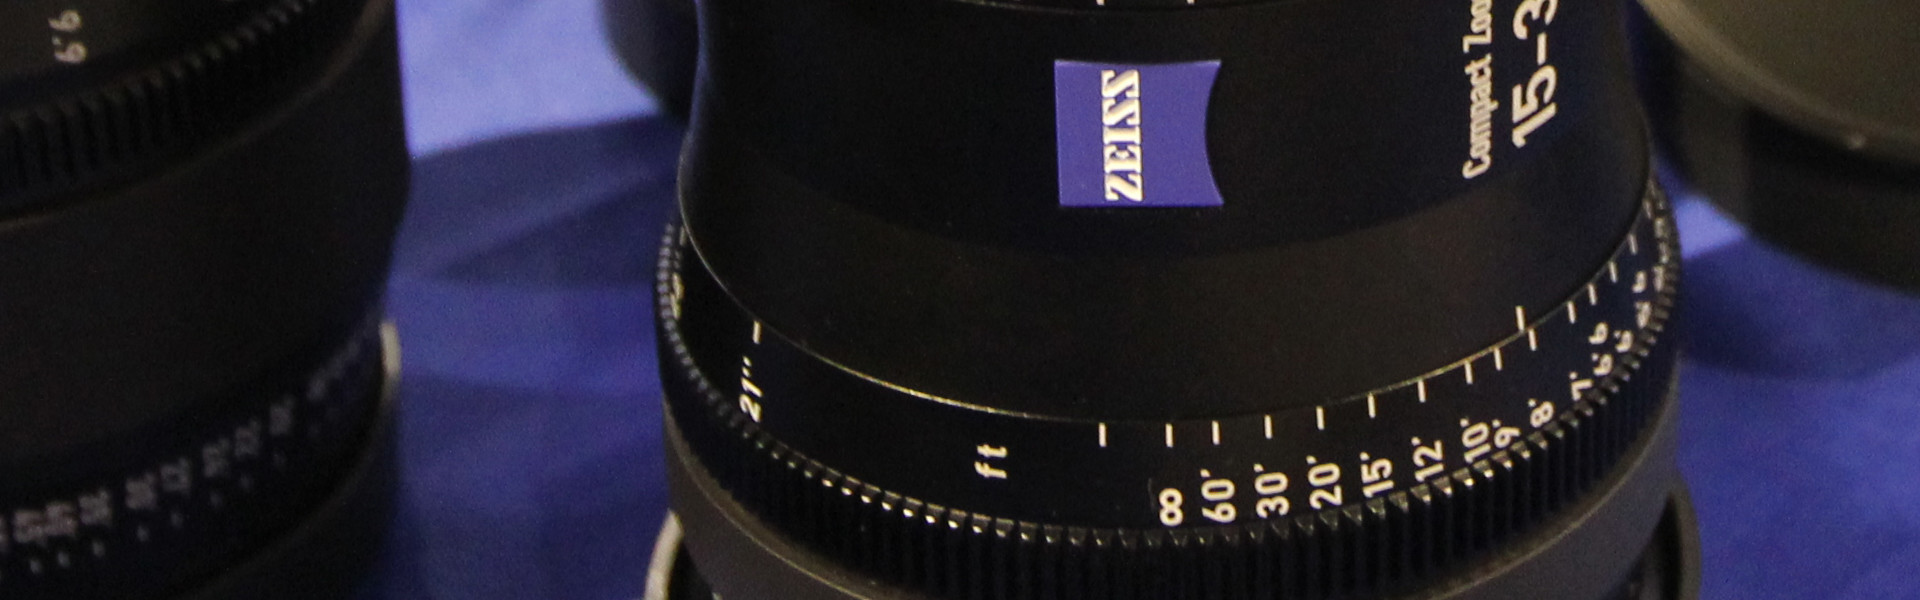 Header image for article Zeiss DigiPrimes, DigiZooms Now Available for Sale at Abel